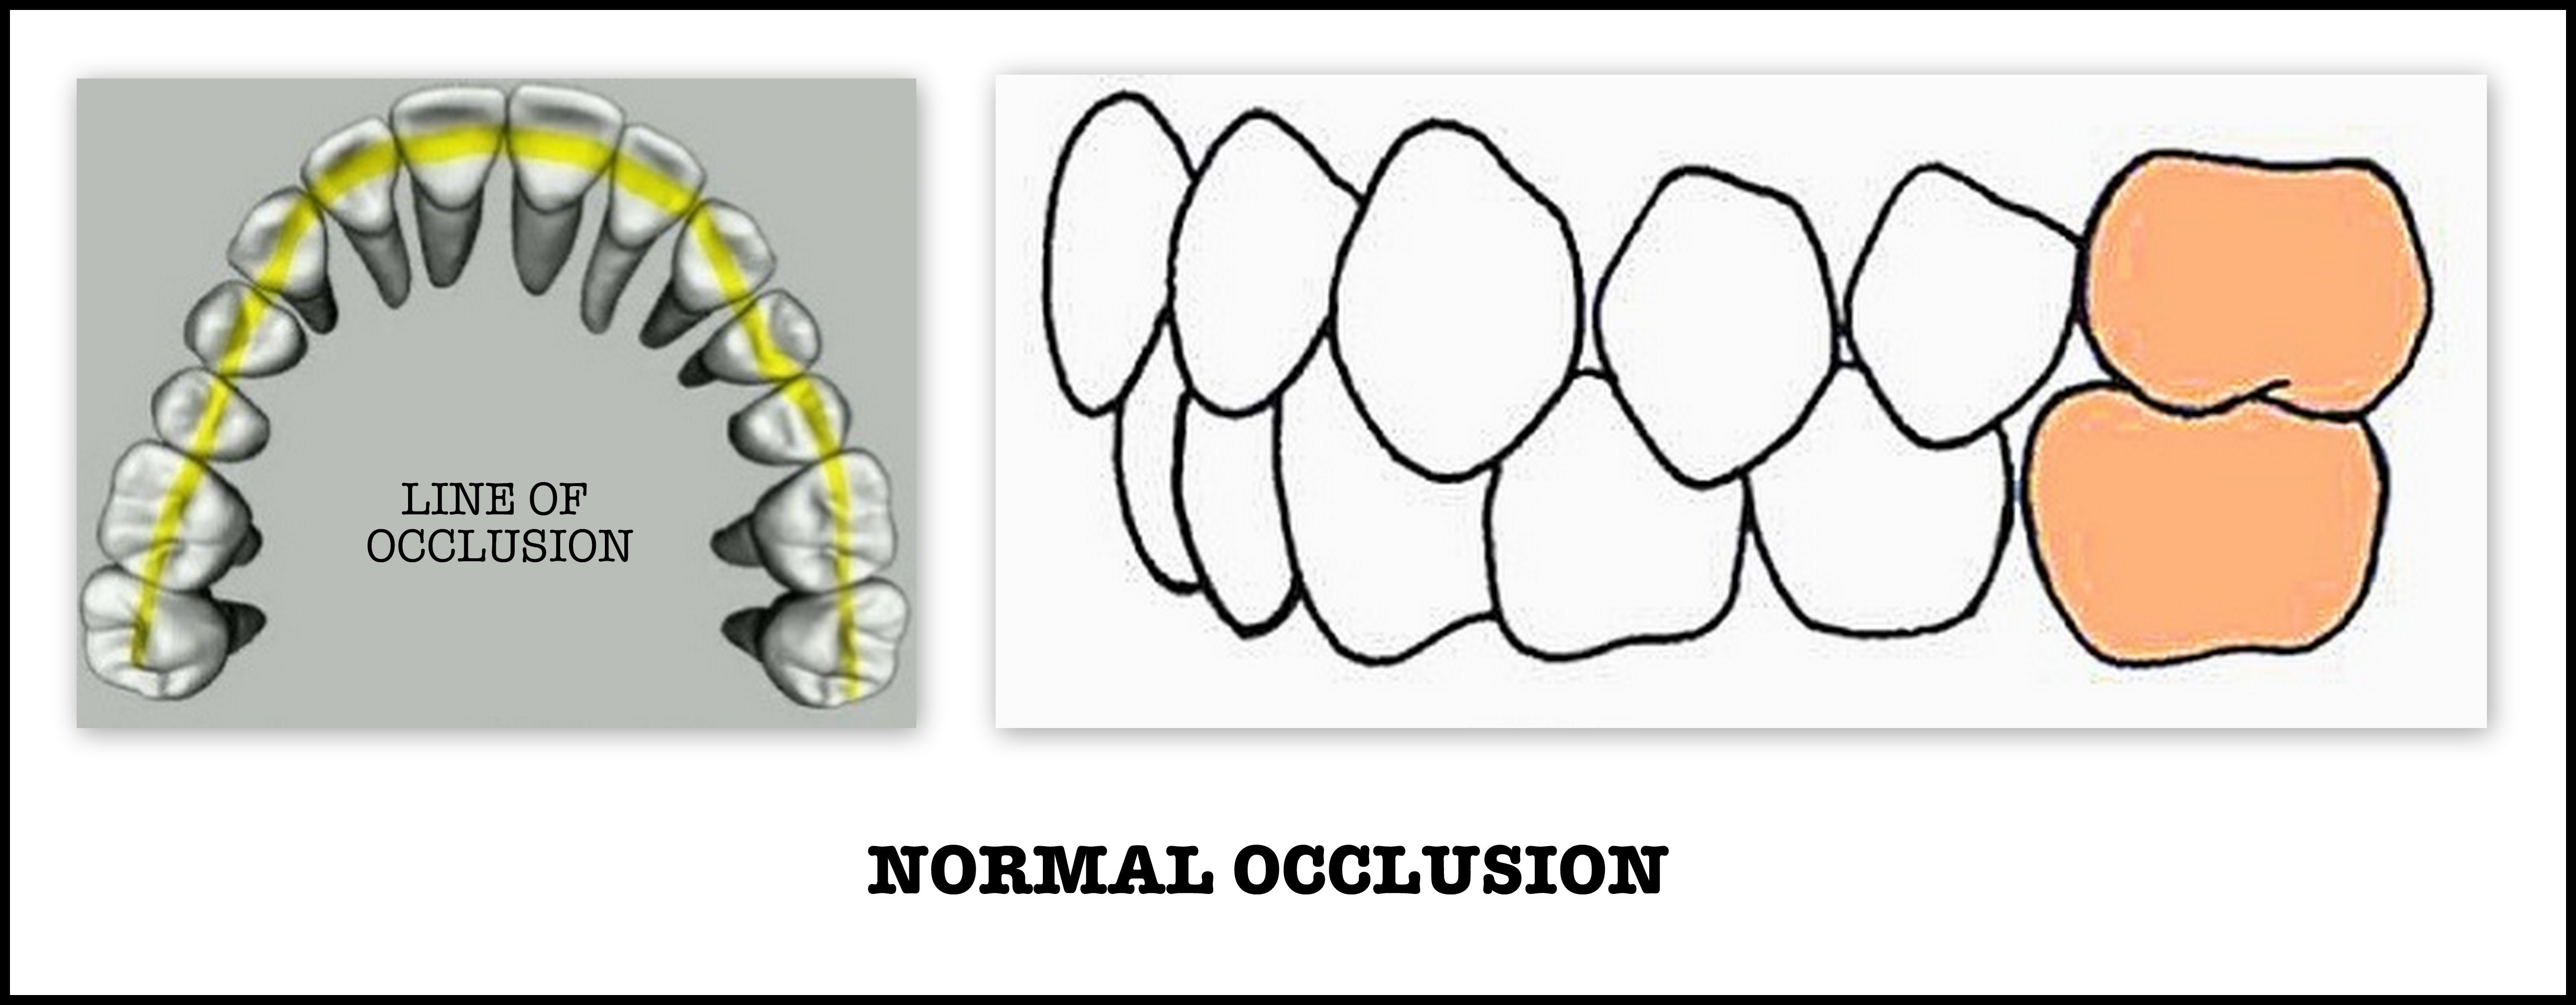 Angle S Classification Of Malocclusion